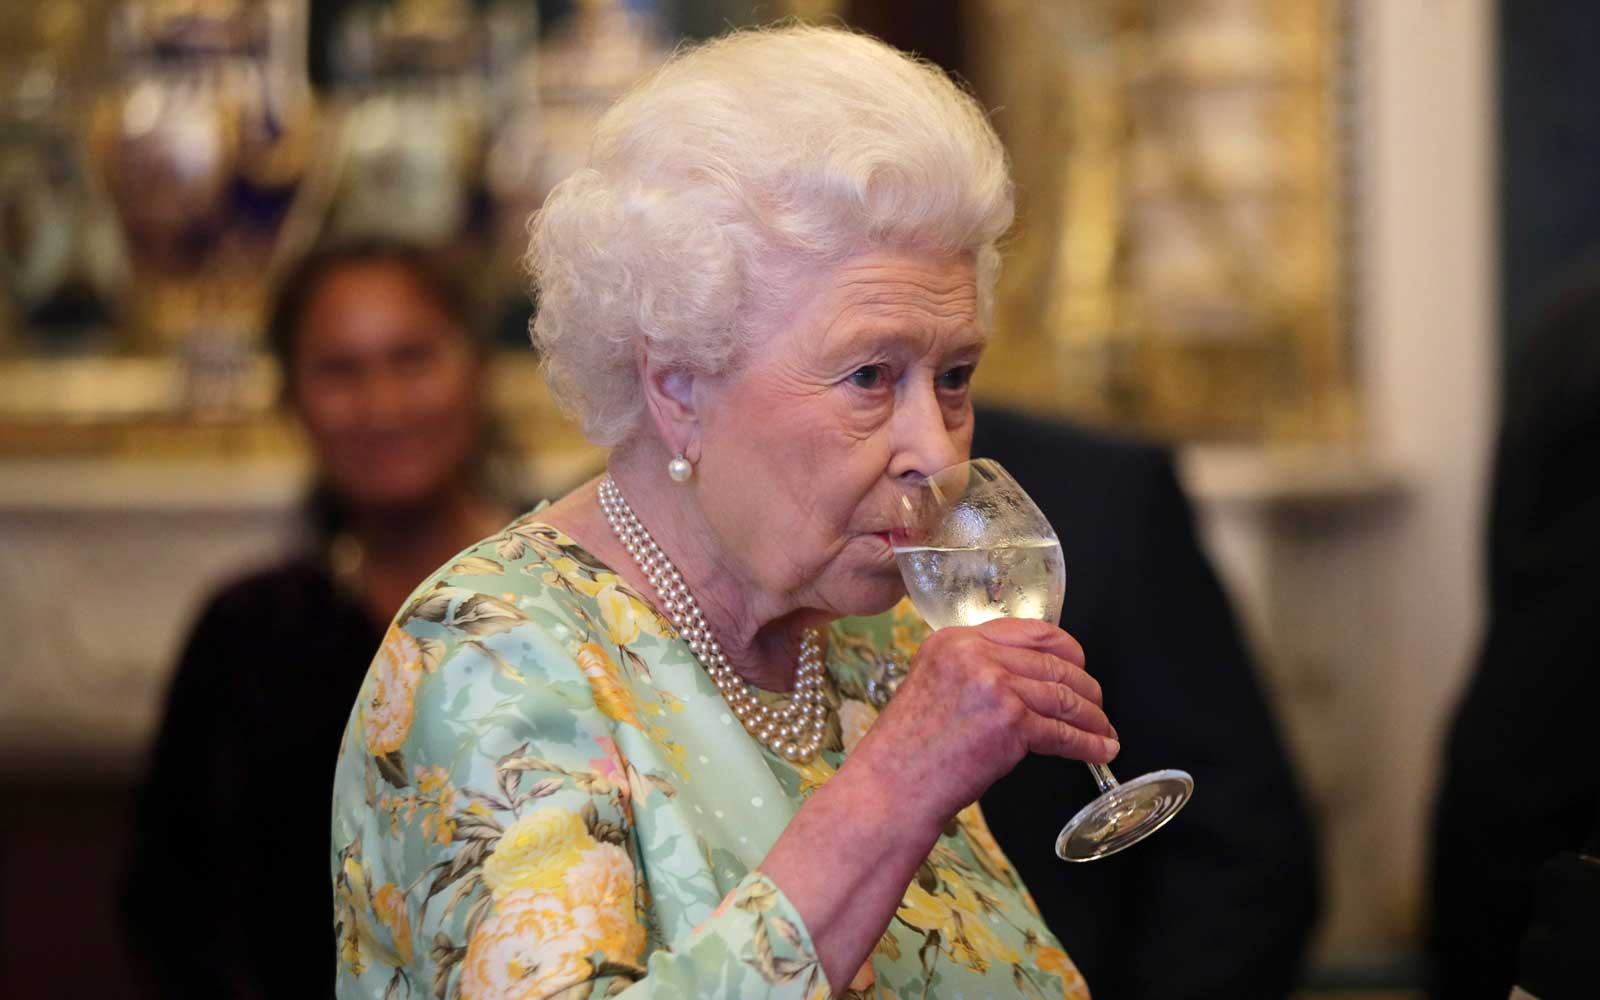 The Queen of England Enjoys These Four Cocktails